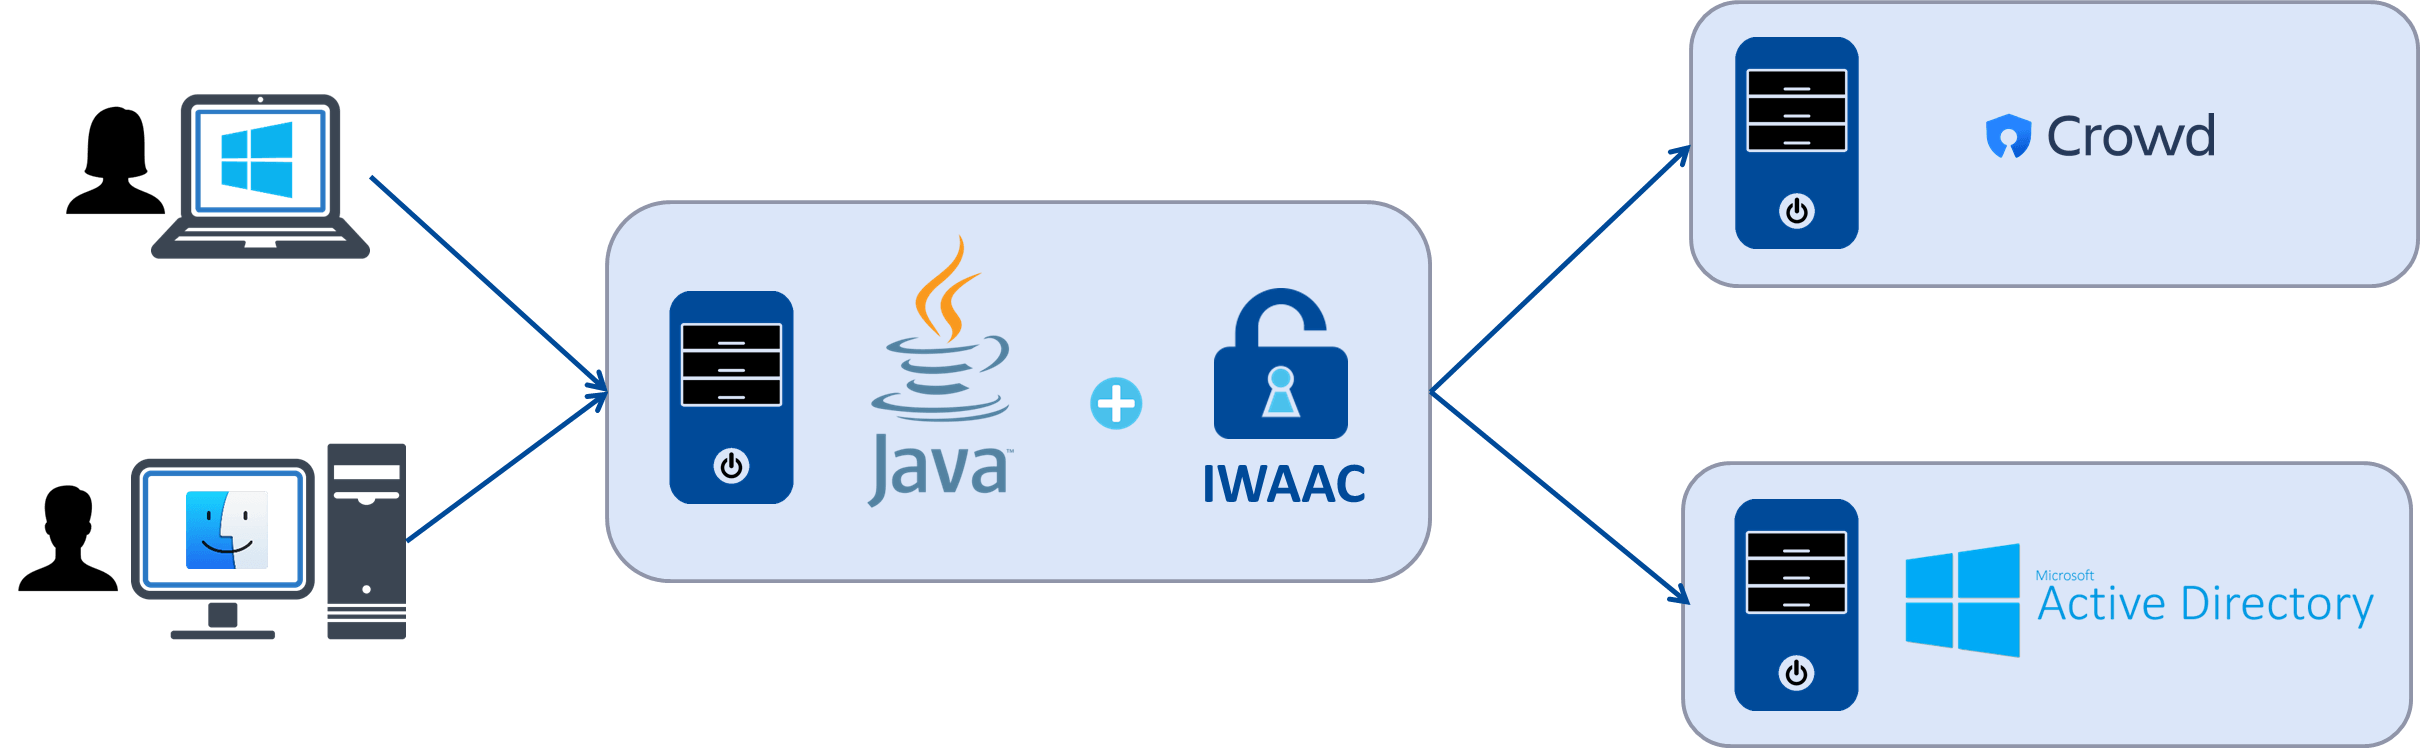 IWAAC for generic Java web applications Overview